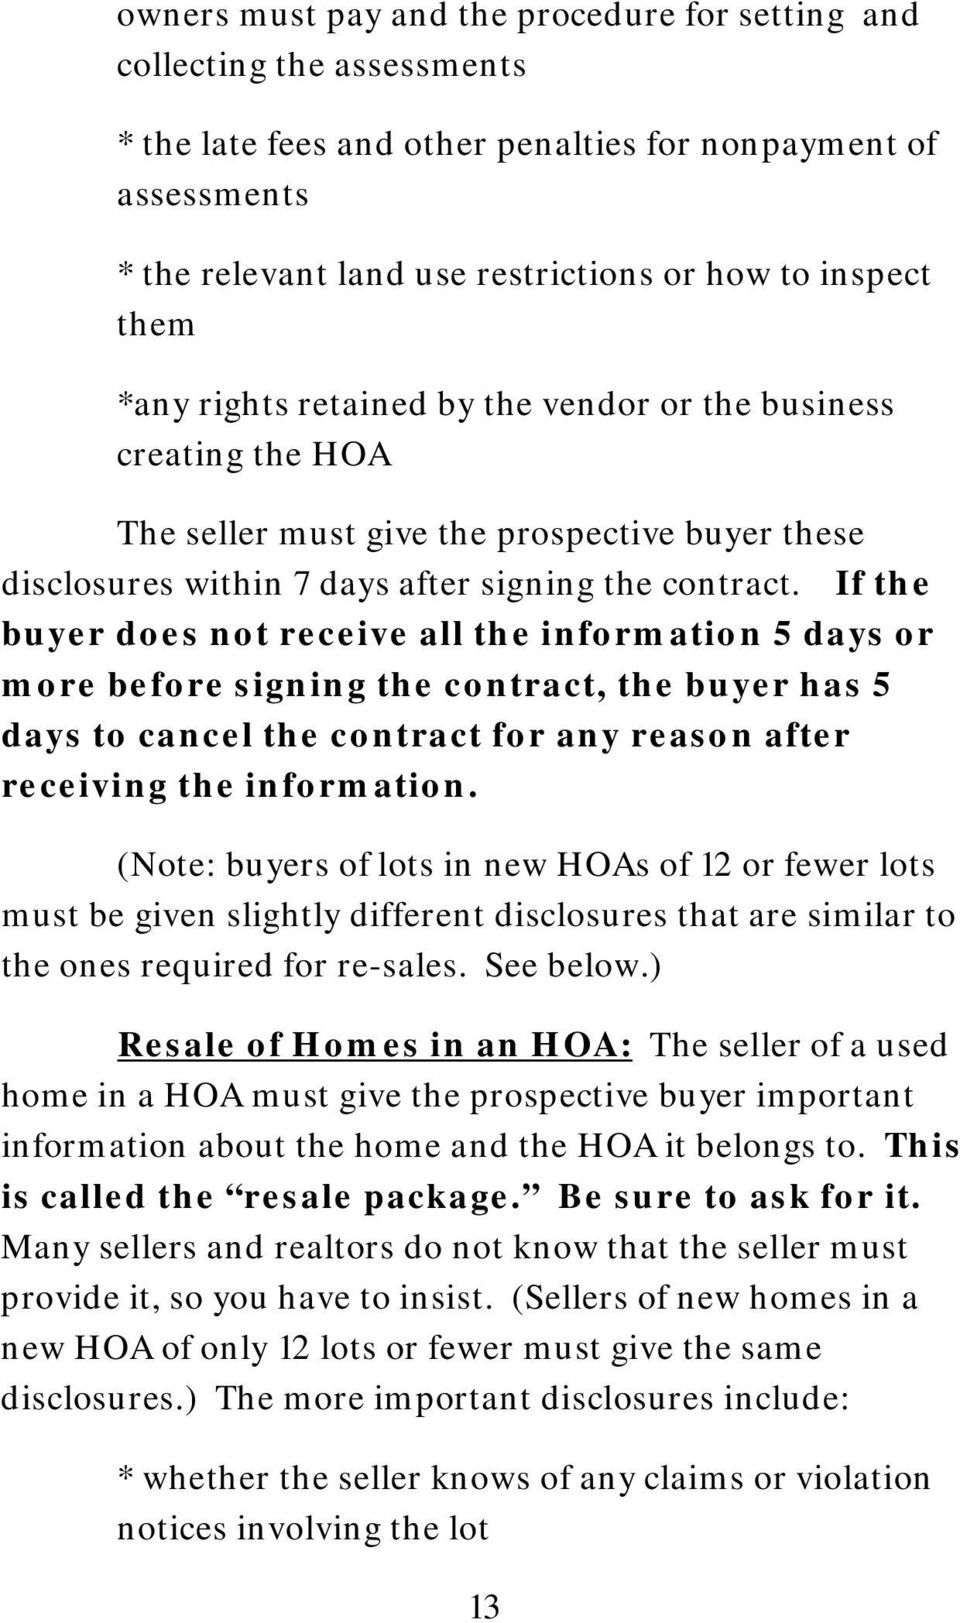 If the buyer does not receive all the information 5 days or more before signing the contract, the buyer has 5 days to cancel the contract for any reason after receiving the information.